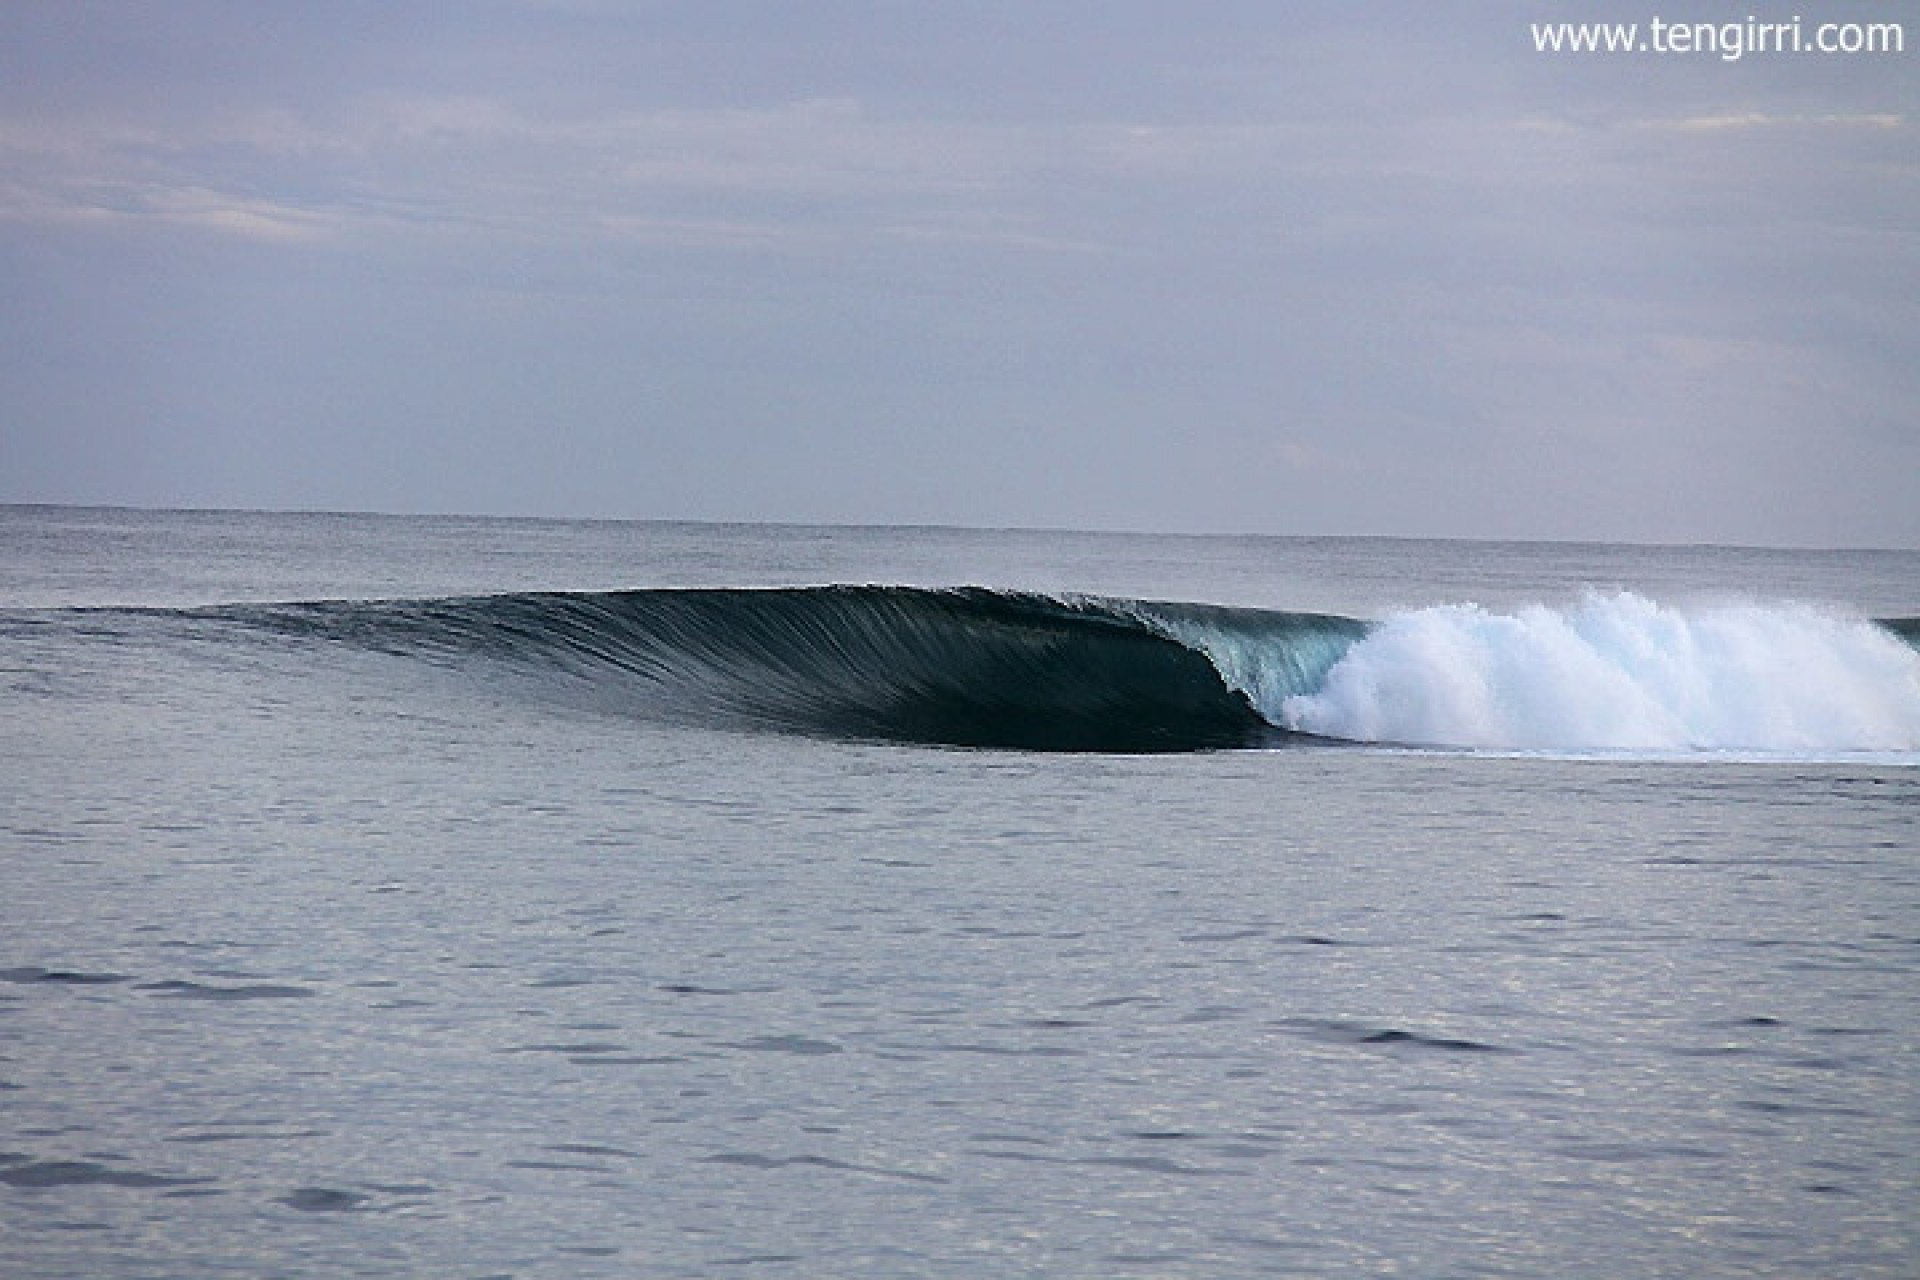 Tengirri Surf Charters's photo of Bintangs